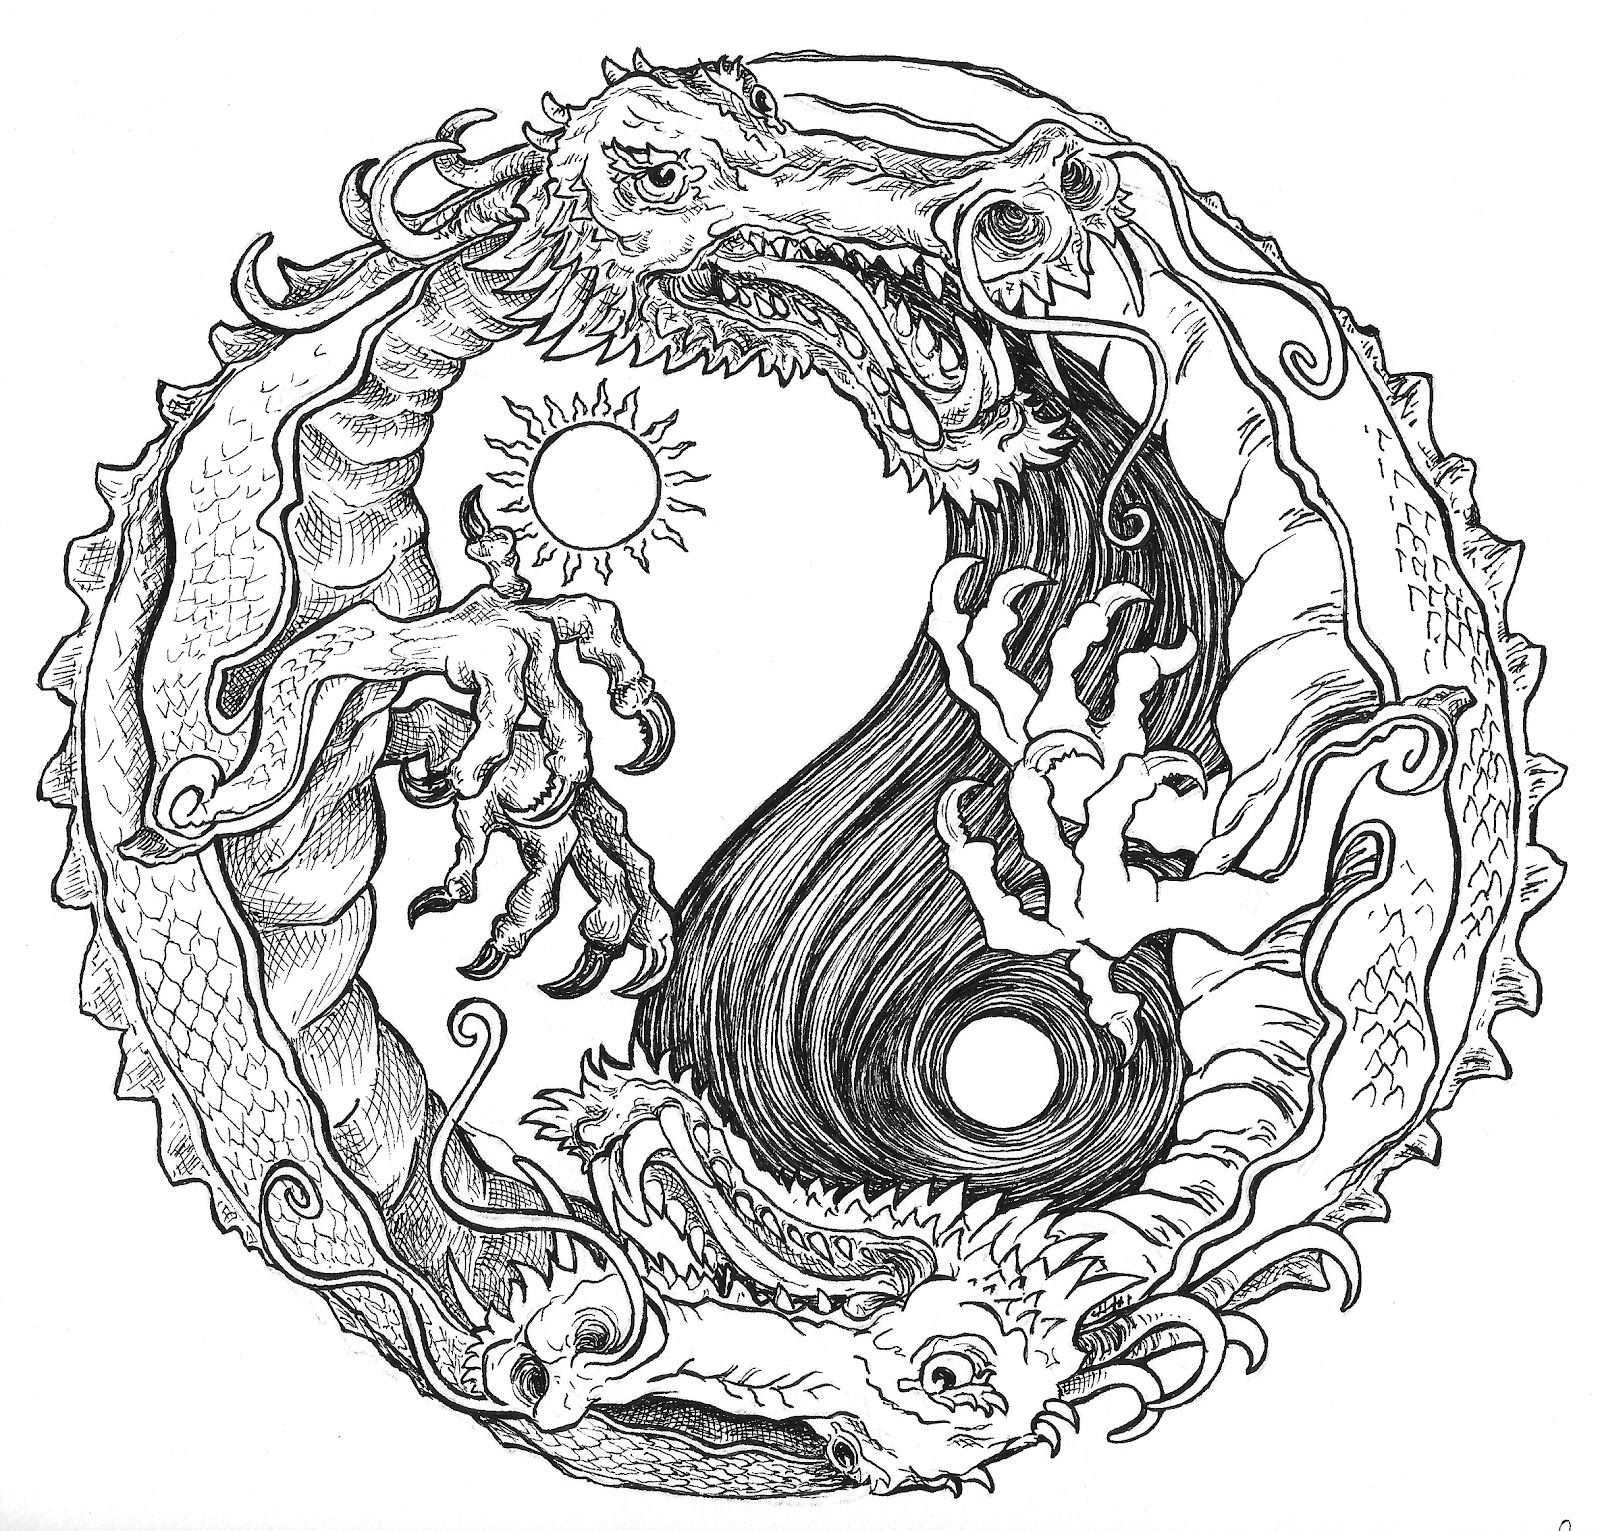 Sun And Moon Dragon Yin Yang Coloring Pages Colouring Adult Detailed - Free Printable Coloring Pages For Adults Advanced